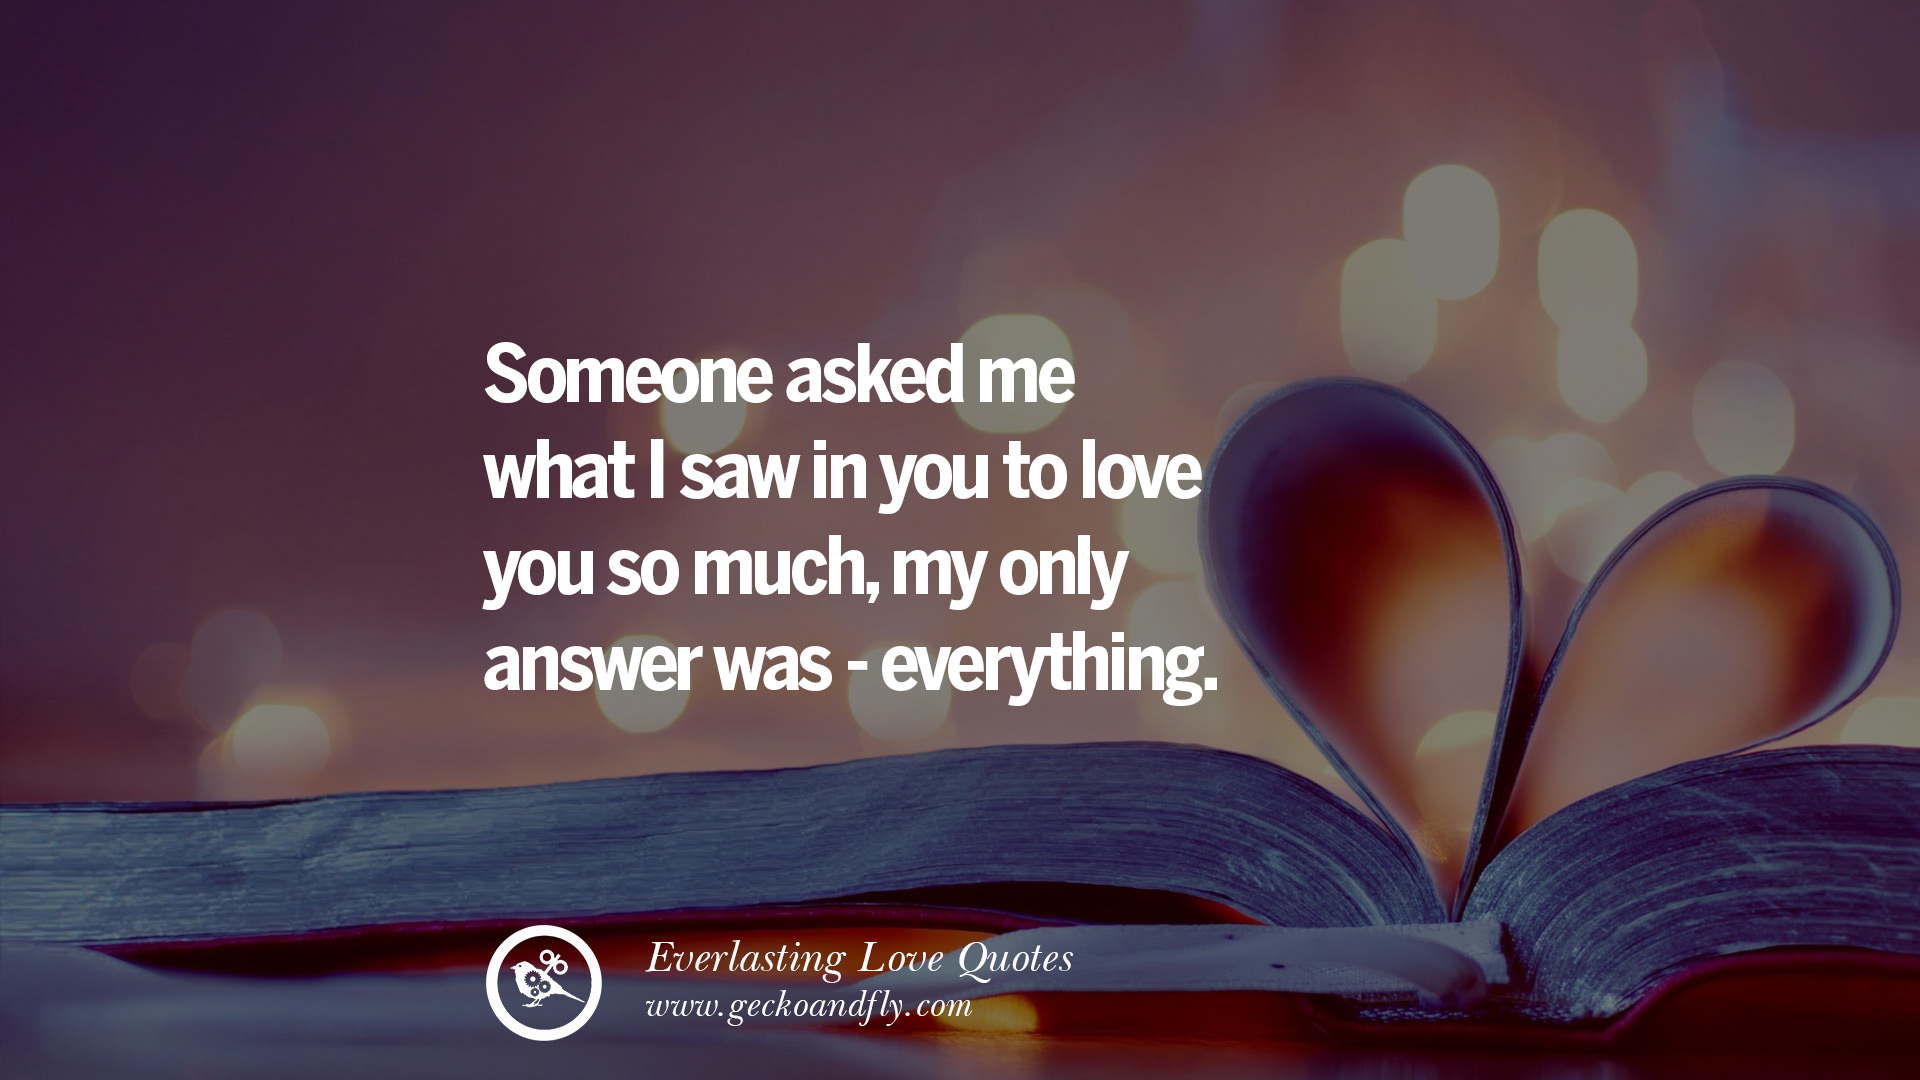 Romantic Love Quotes Glamorous 18 Romantic Love Quotes For Him And Her On Valentine Day